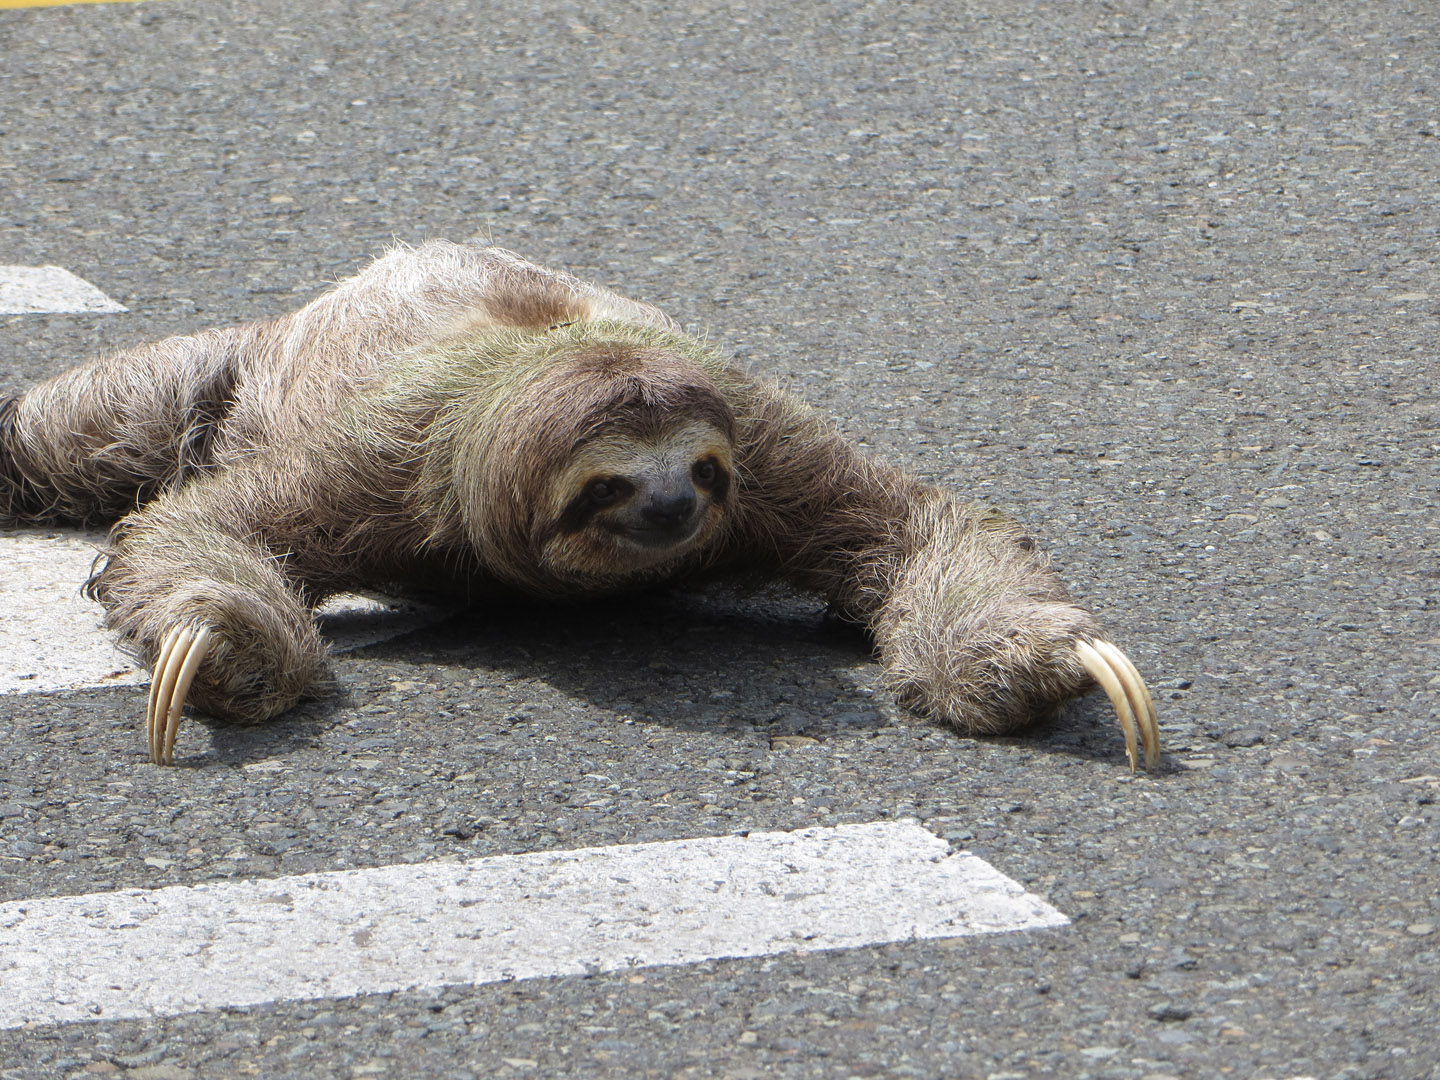 of Nature: Sloth Has Rib-Cage Bones in Its Neck